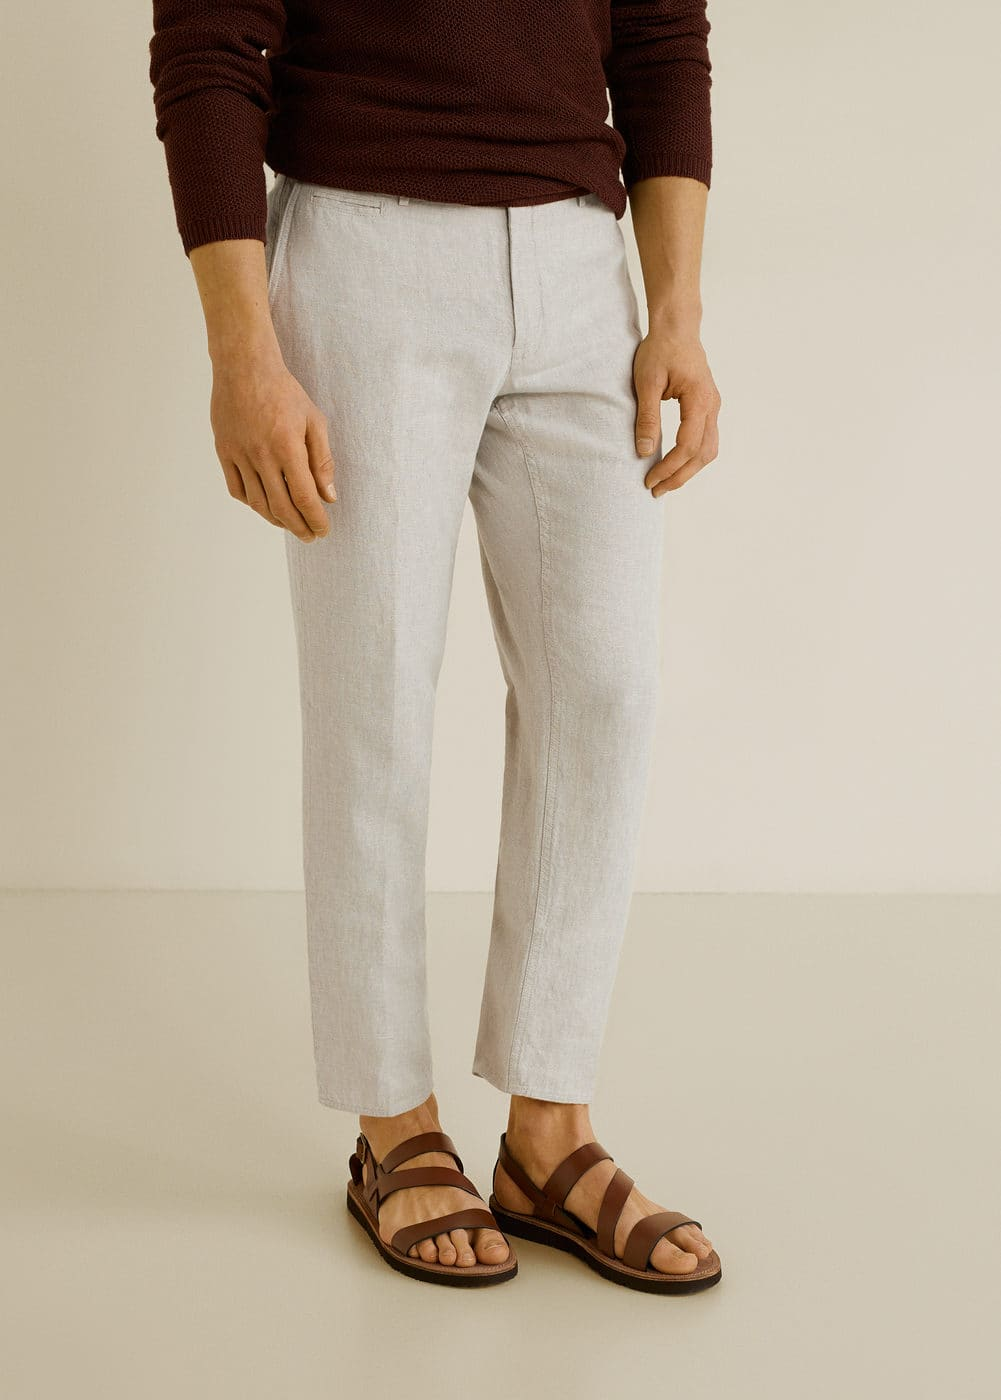 Slim Fit Leinenhose by Mango